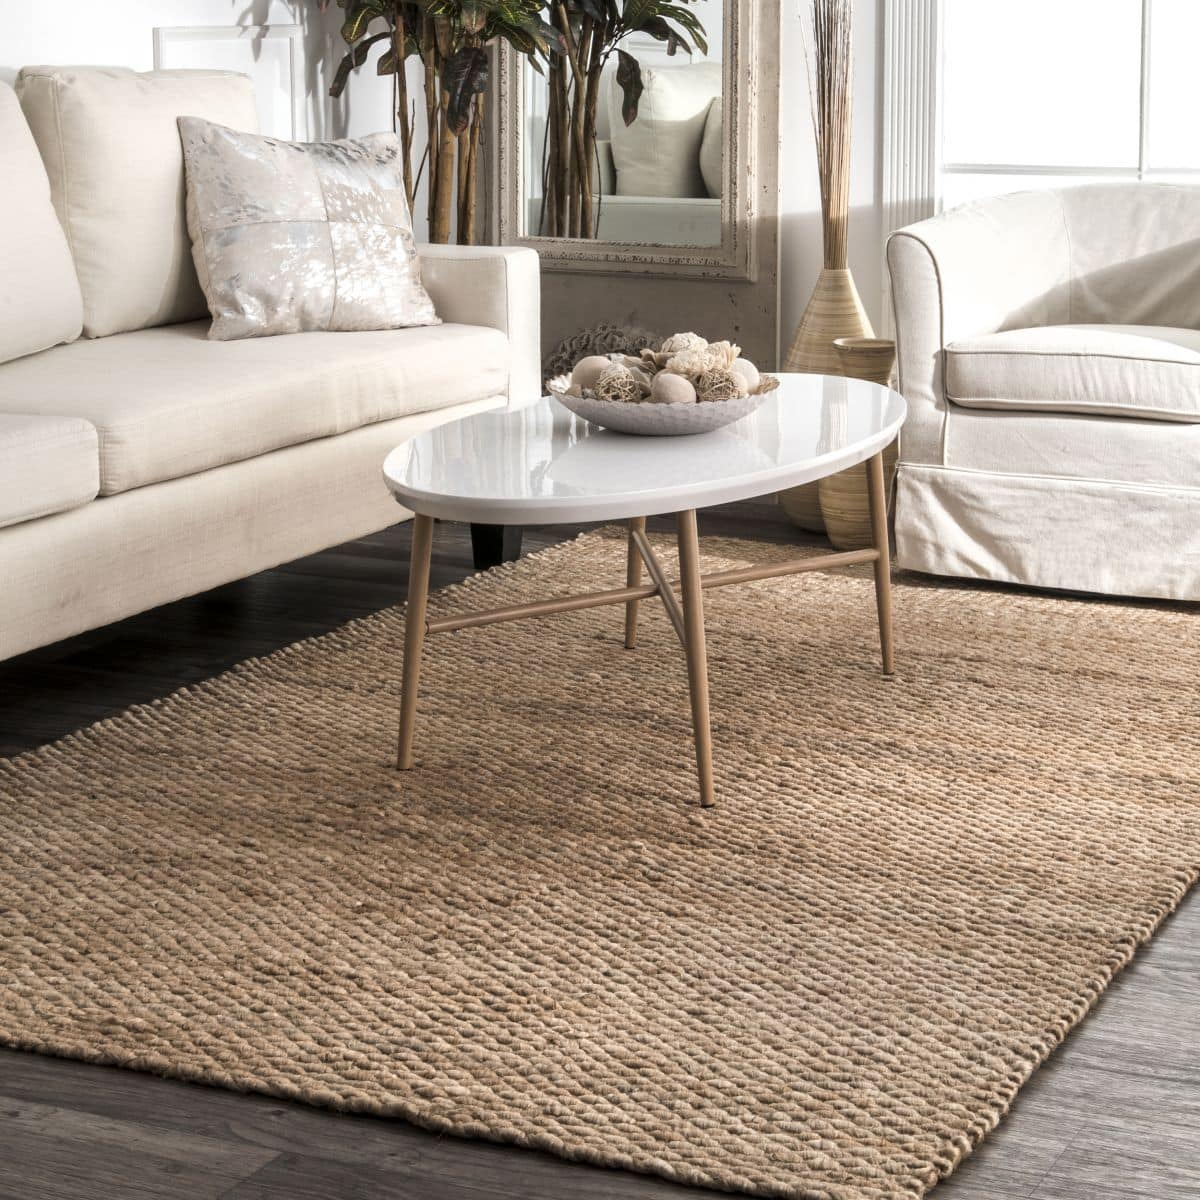 Add a Natural Element to Your Room With a Jute Rug